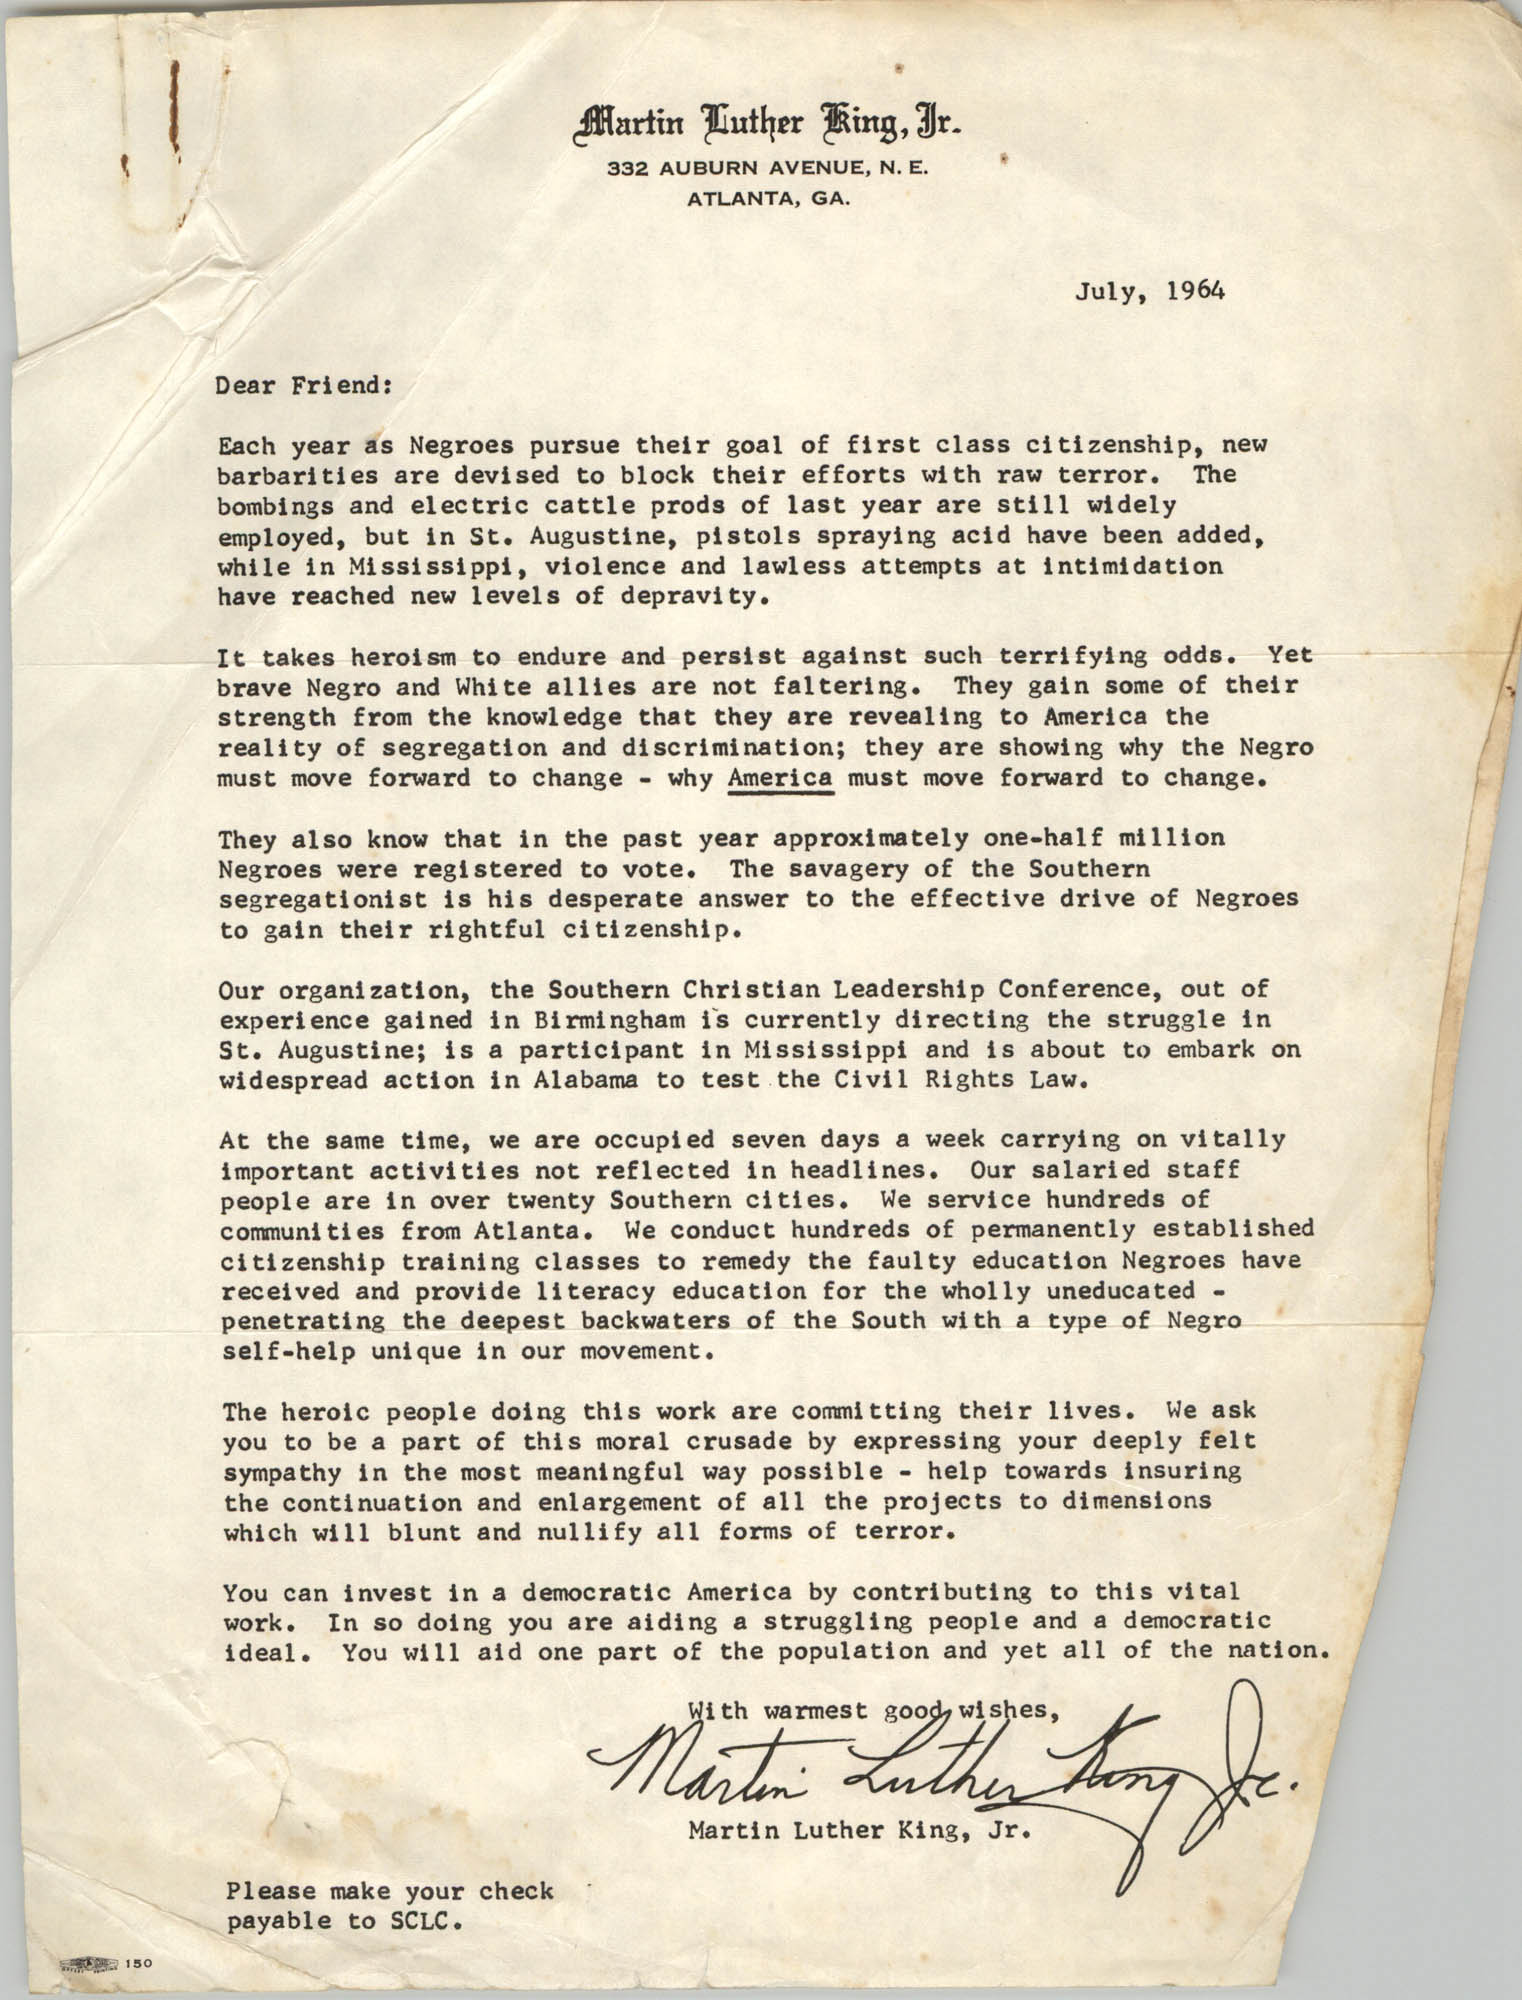 Letter from Martin Luther King, Jr. to Friends of Southern Christian Leadership Conference, July 1964